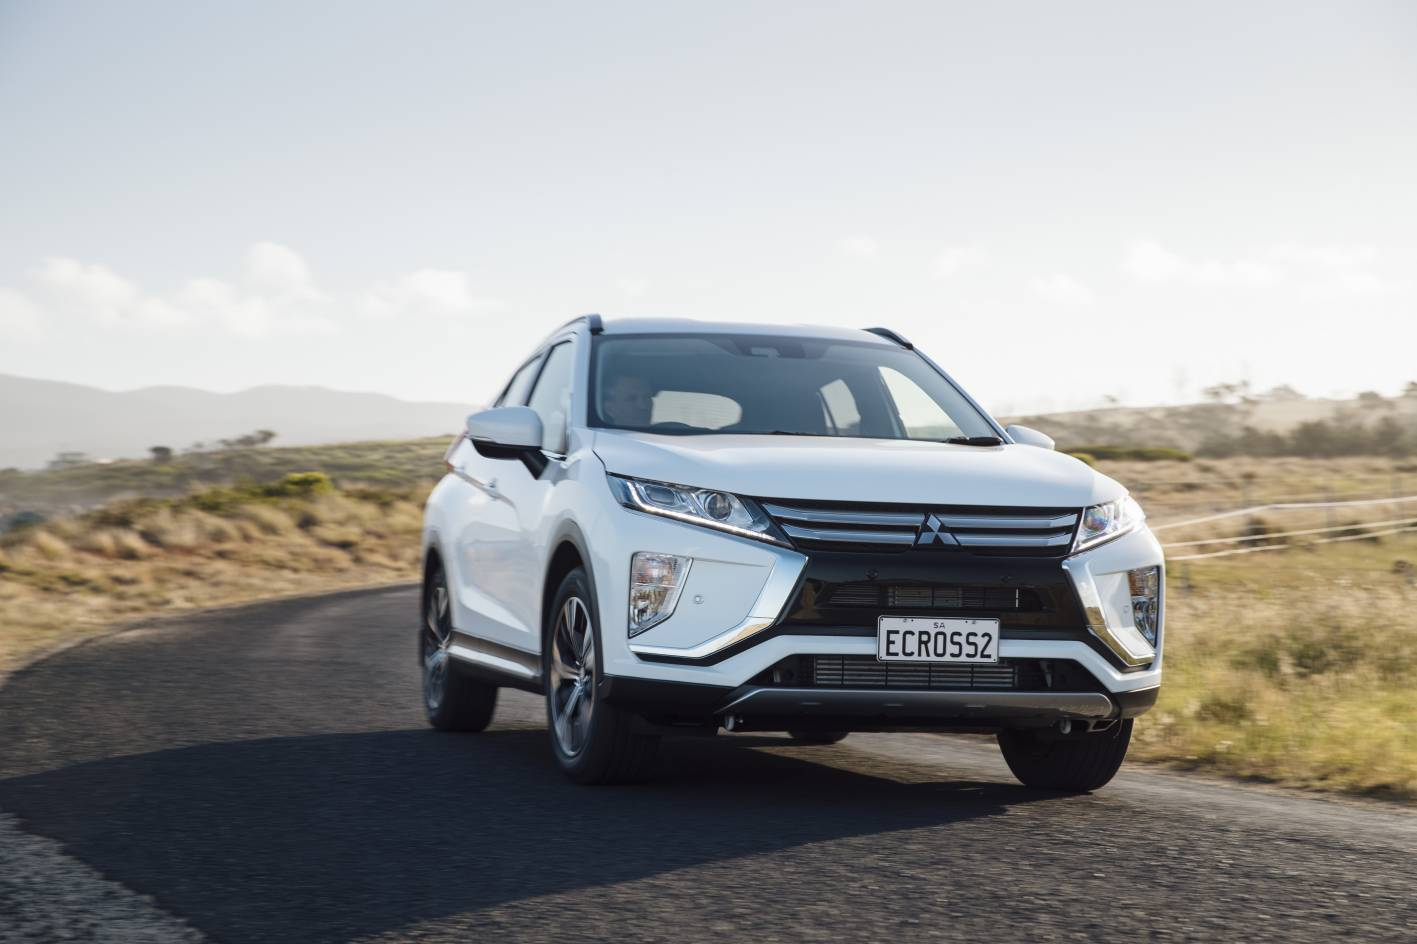 First Look: 2018 Mitsubishi Eclipse Cross - ForceGT.com